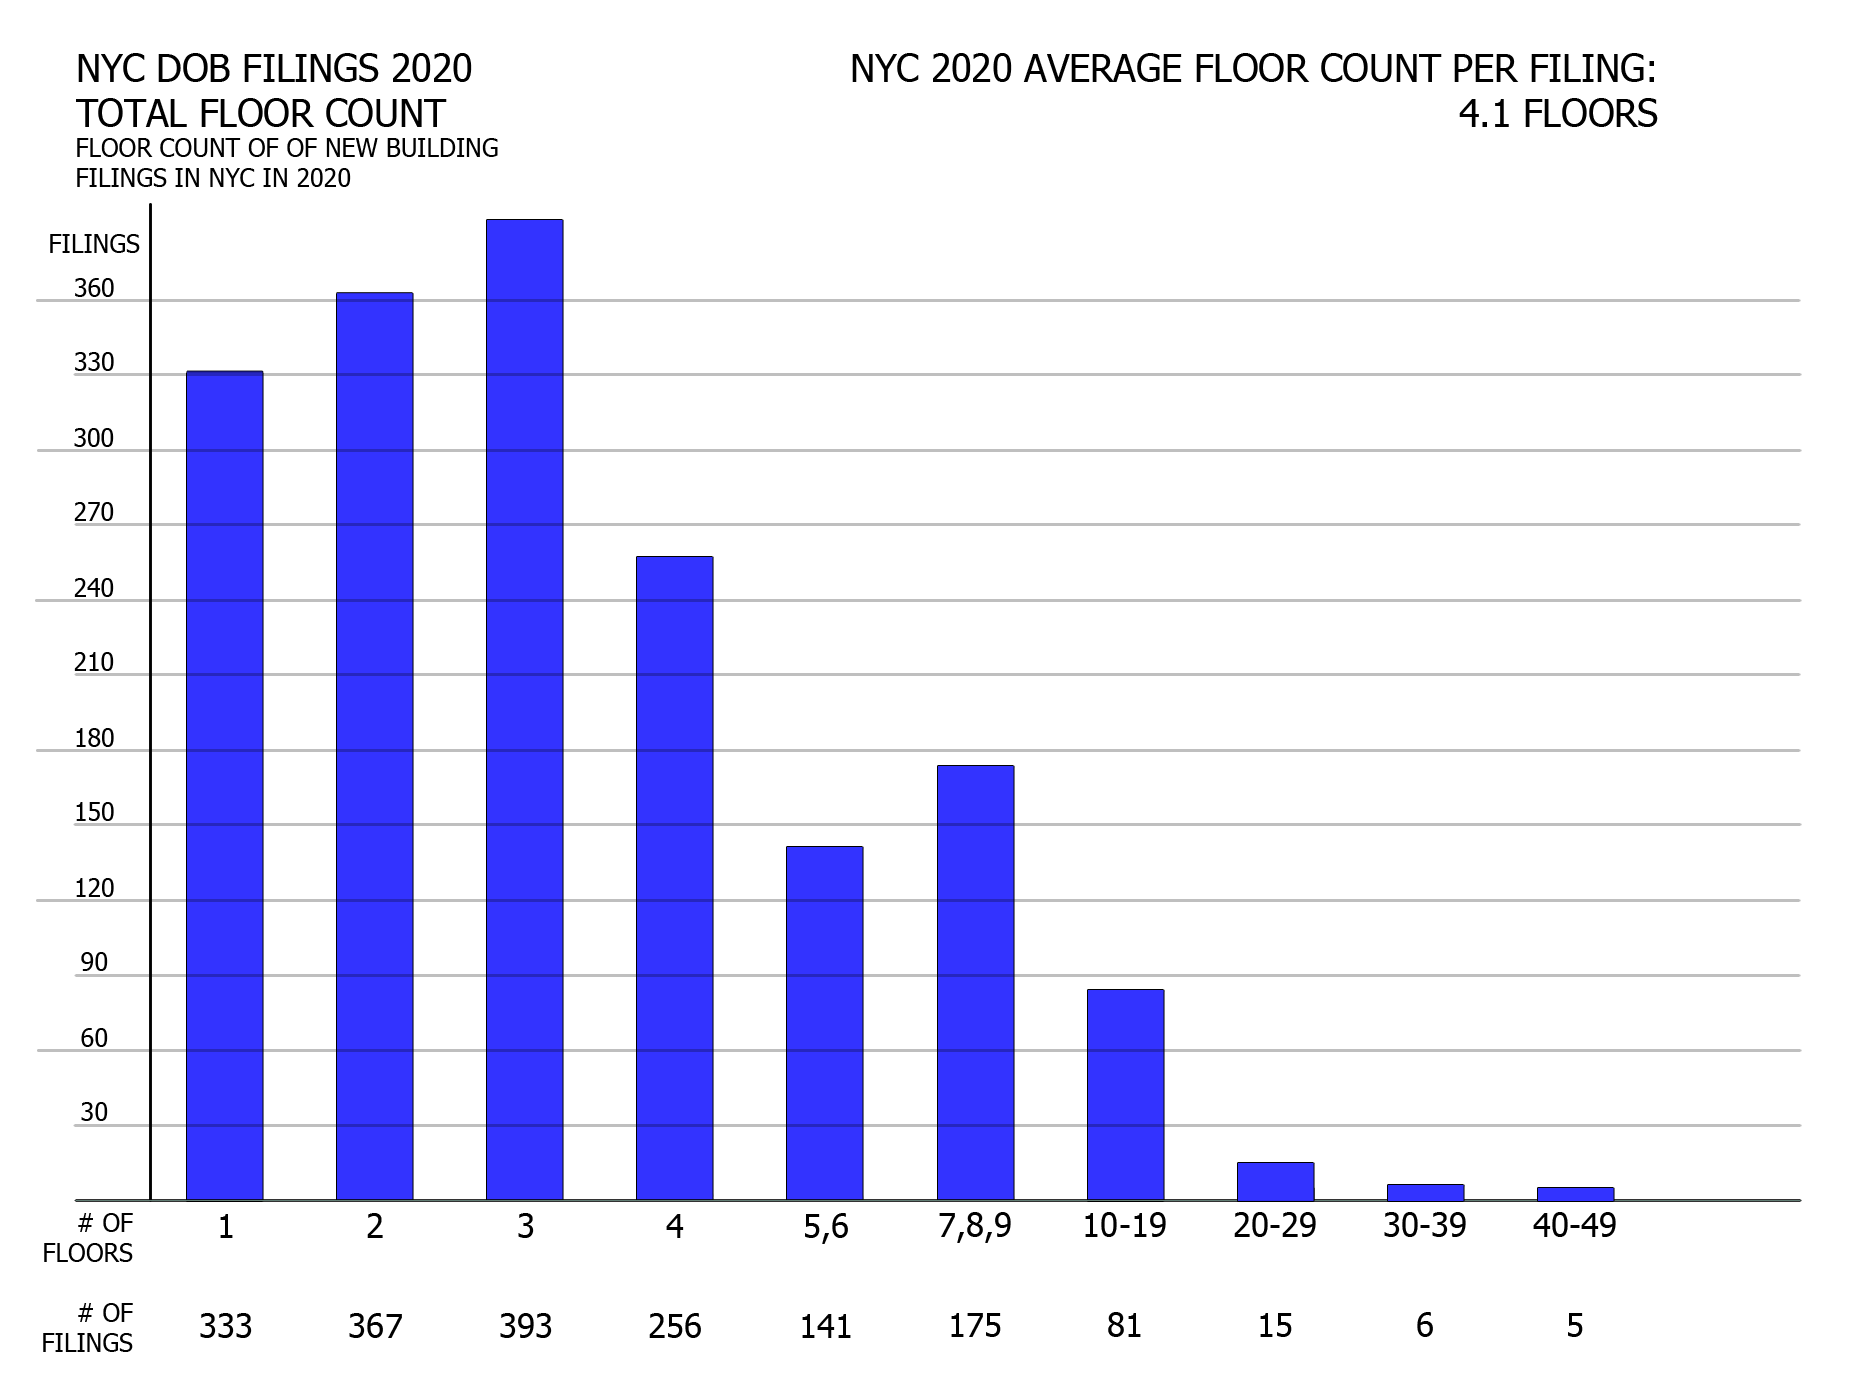 NYC DOB filings in 2020 by floor count. Credit: Vitali Ogorodnikov